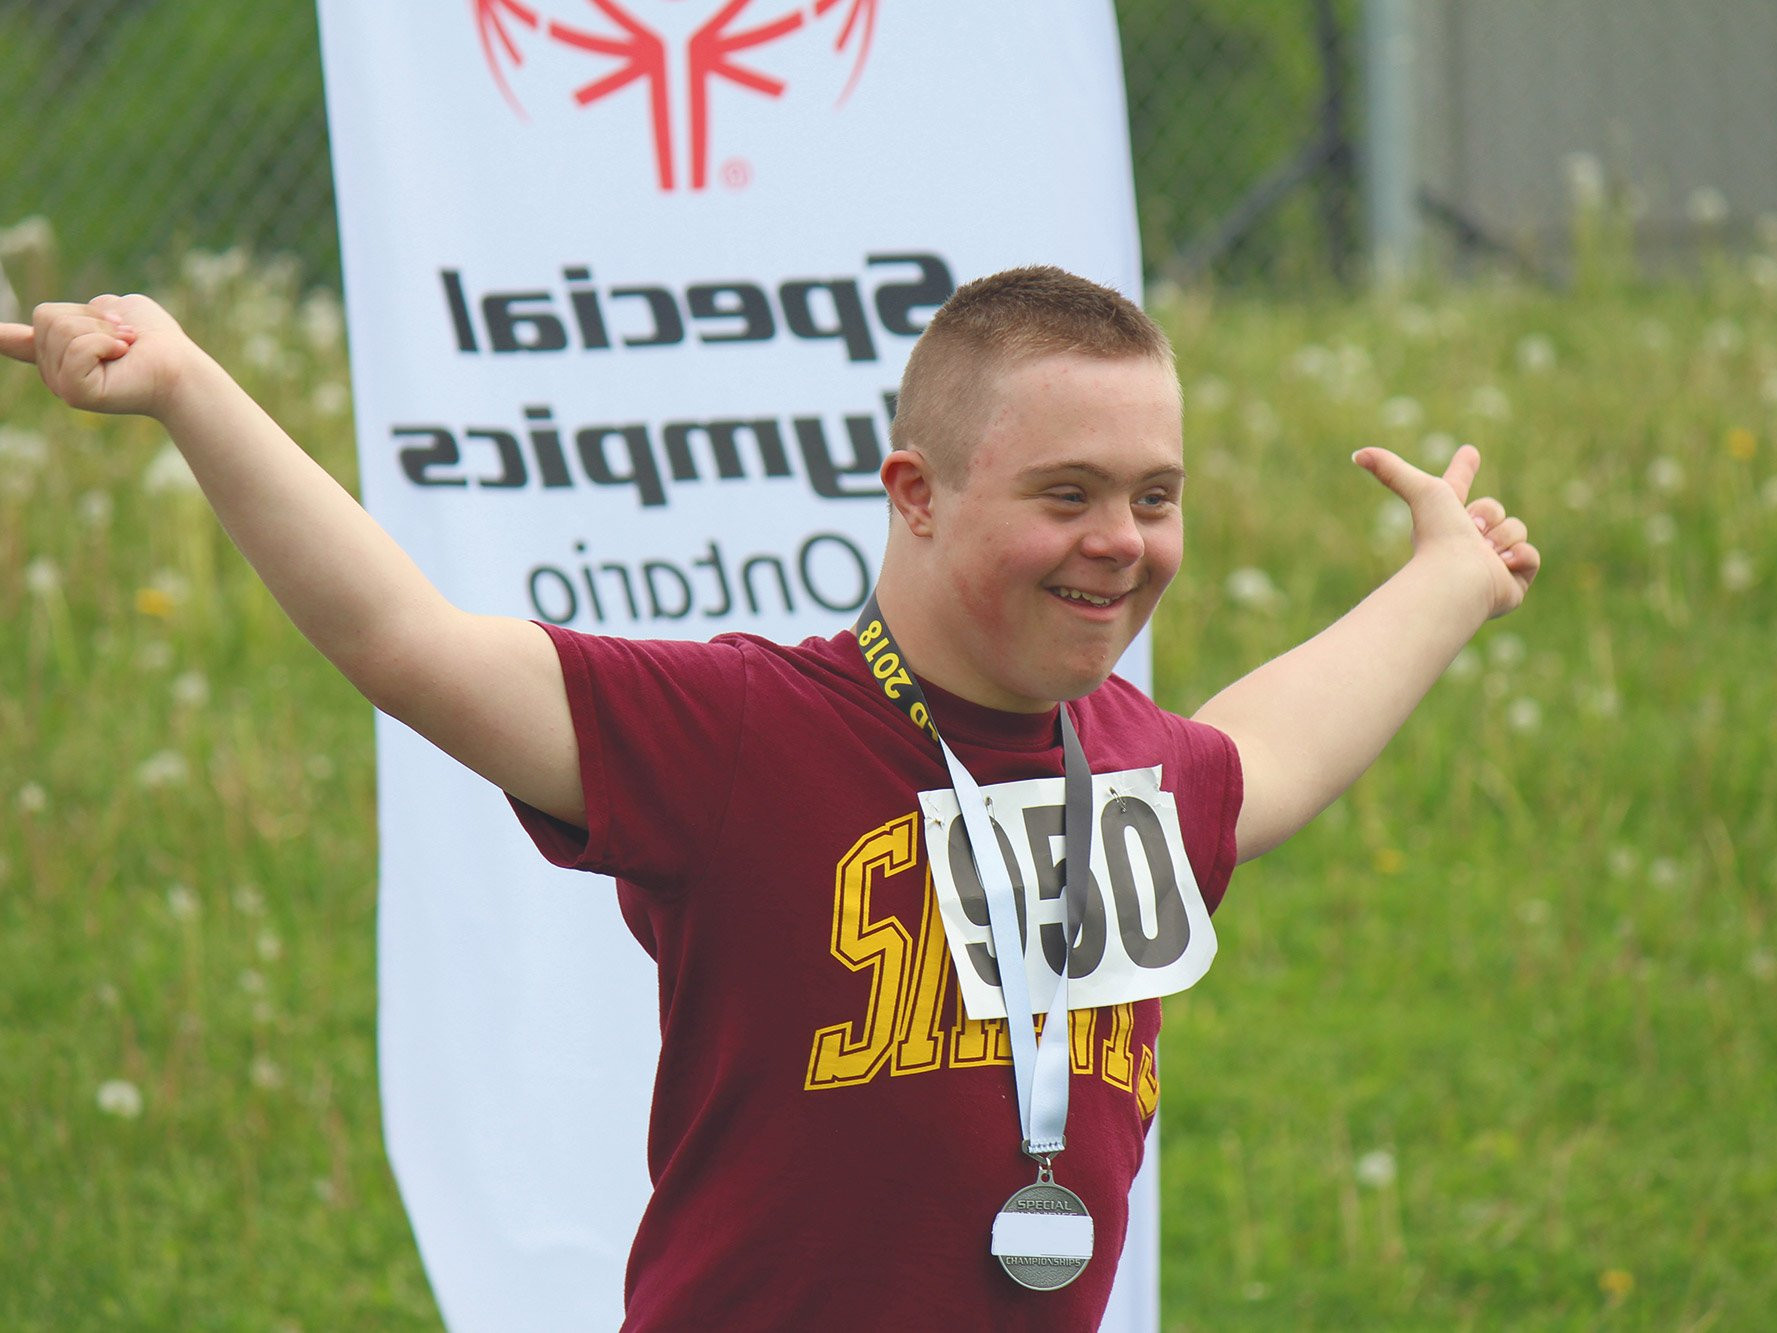 community sports special olympics games